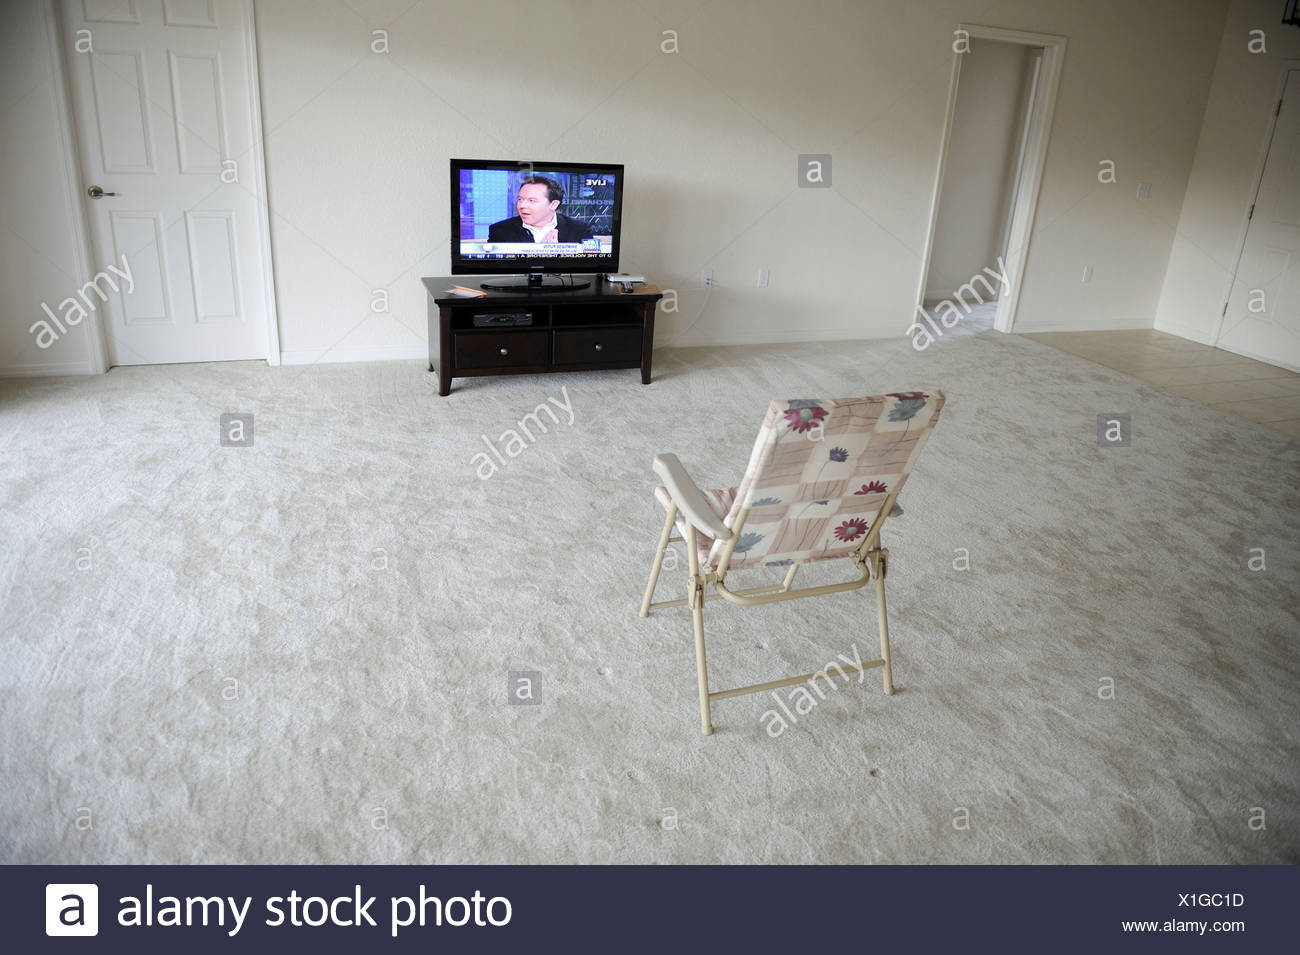 Television Set In Empty Room High Resolution Stock Photography And Images Alamy